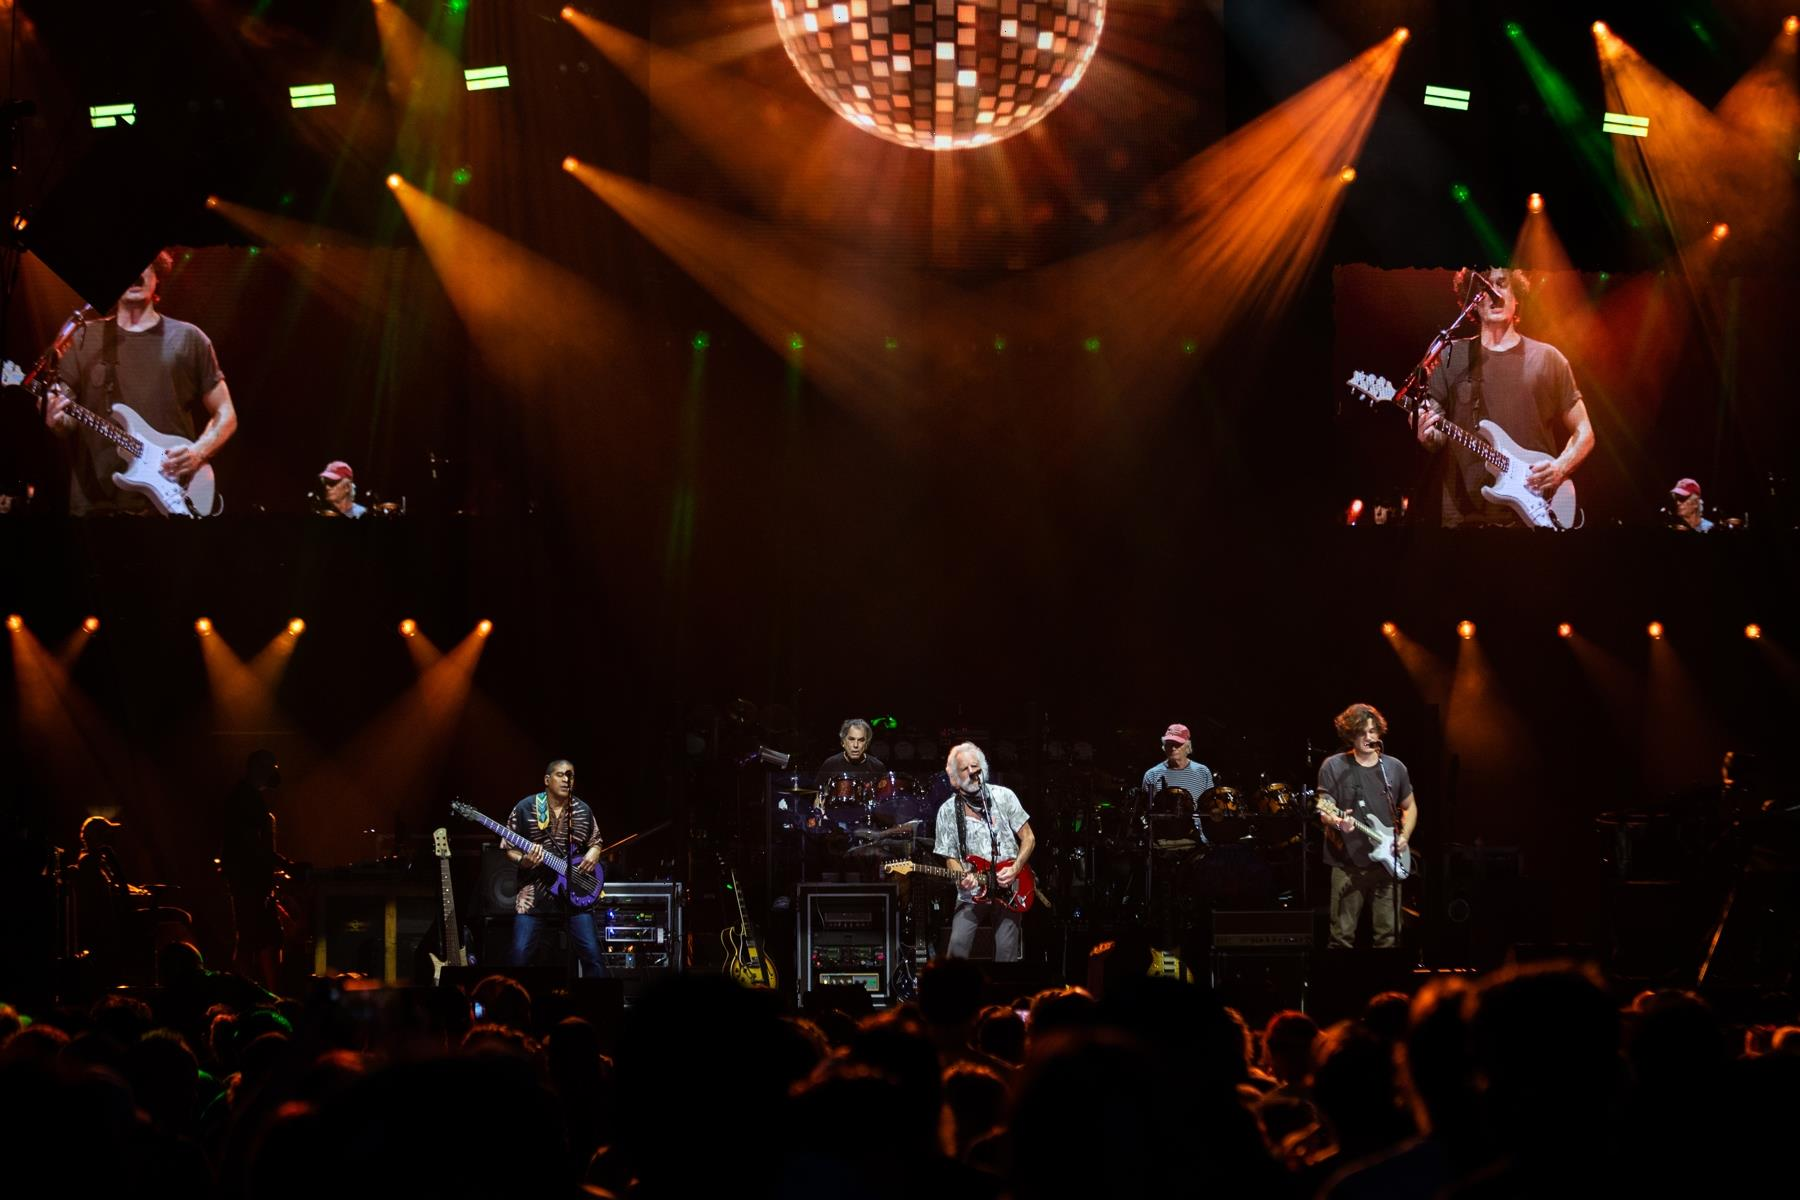 'We Will Survive': Dead and Company Kick Off U.S. Tour With Resilience and Hits